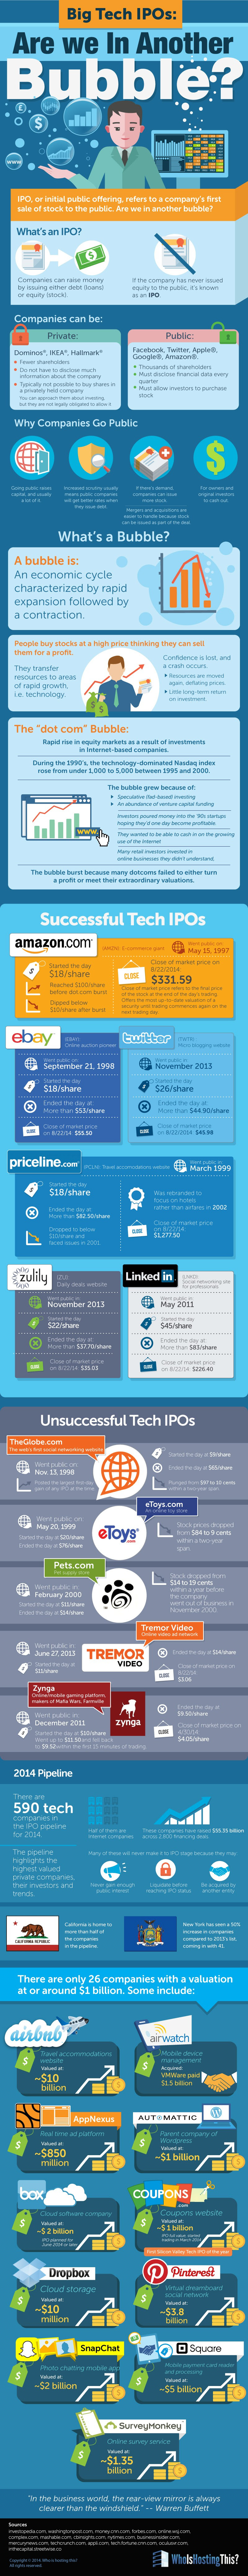 Infographic: Big Tech IPOs: Are We in Another Bubble?